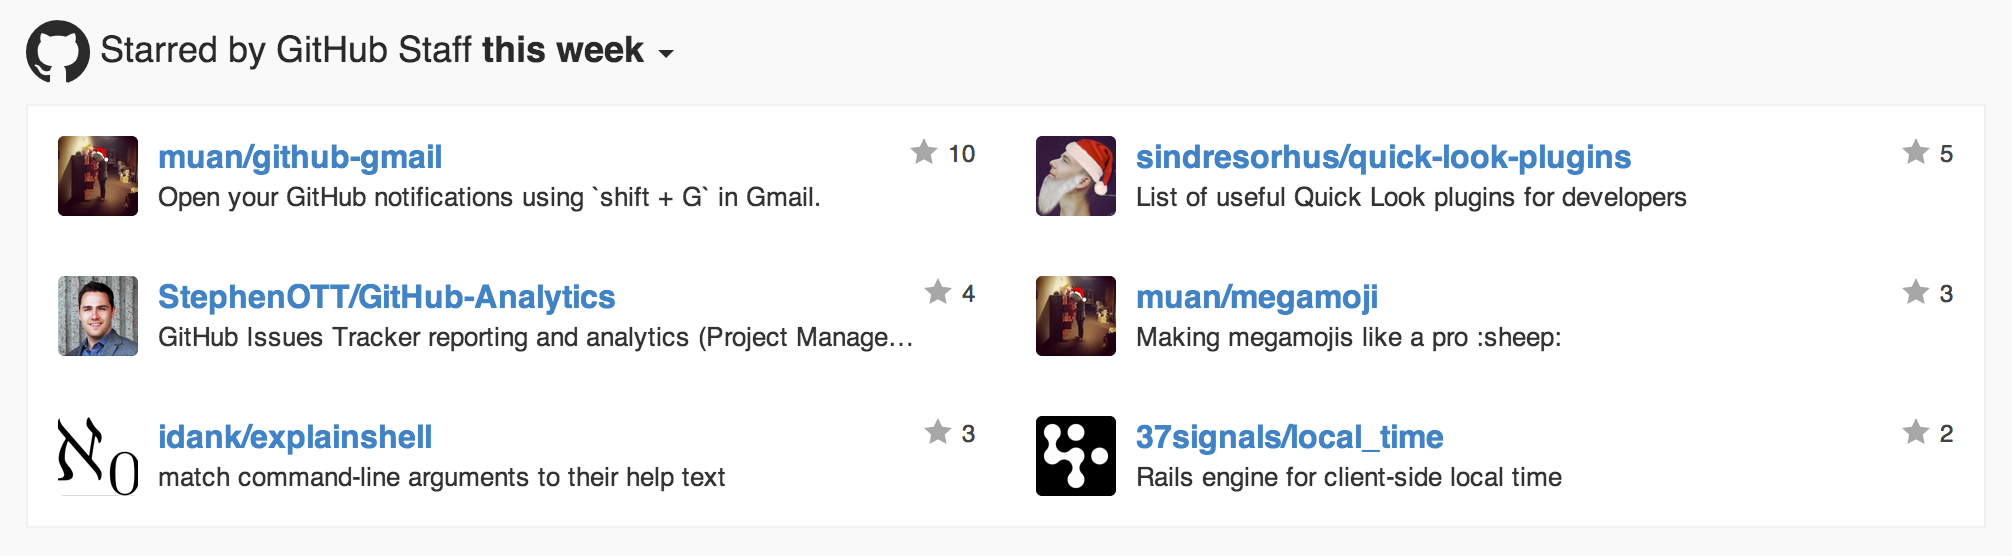 Starred by GitHub staff